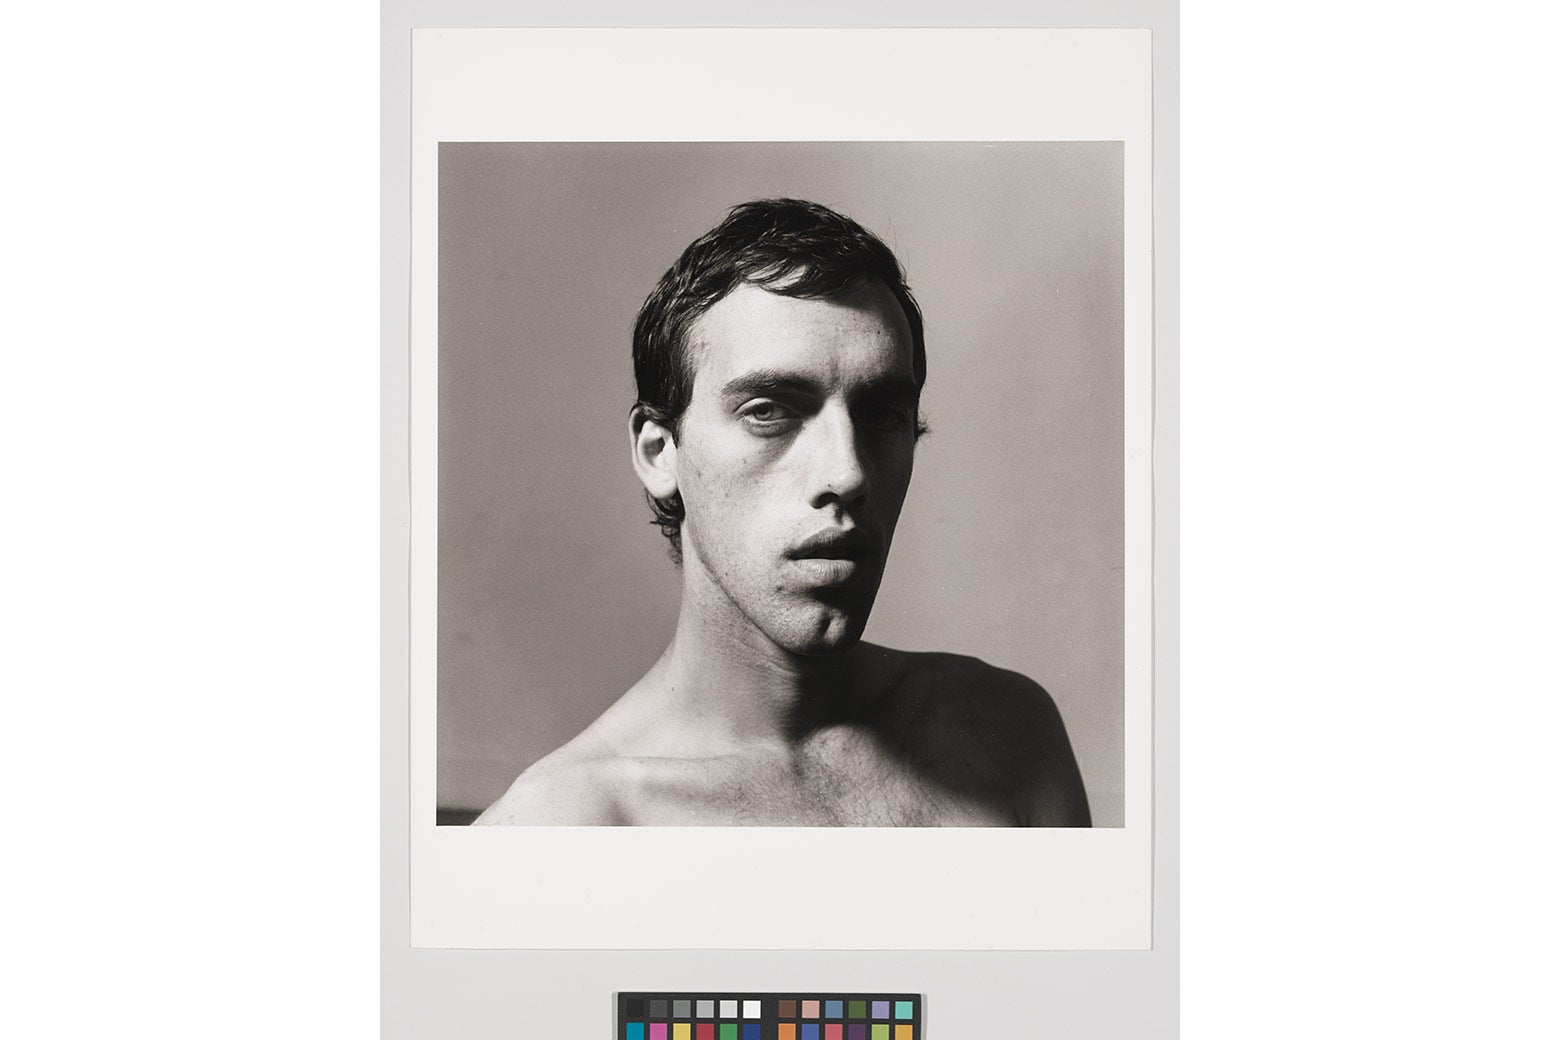 Peter Hujar's photographic portrait of David Wojnarowicz.